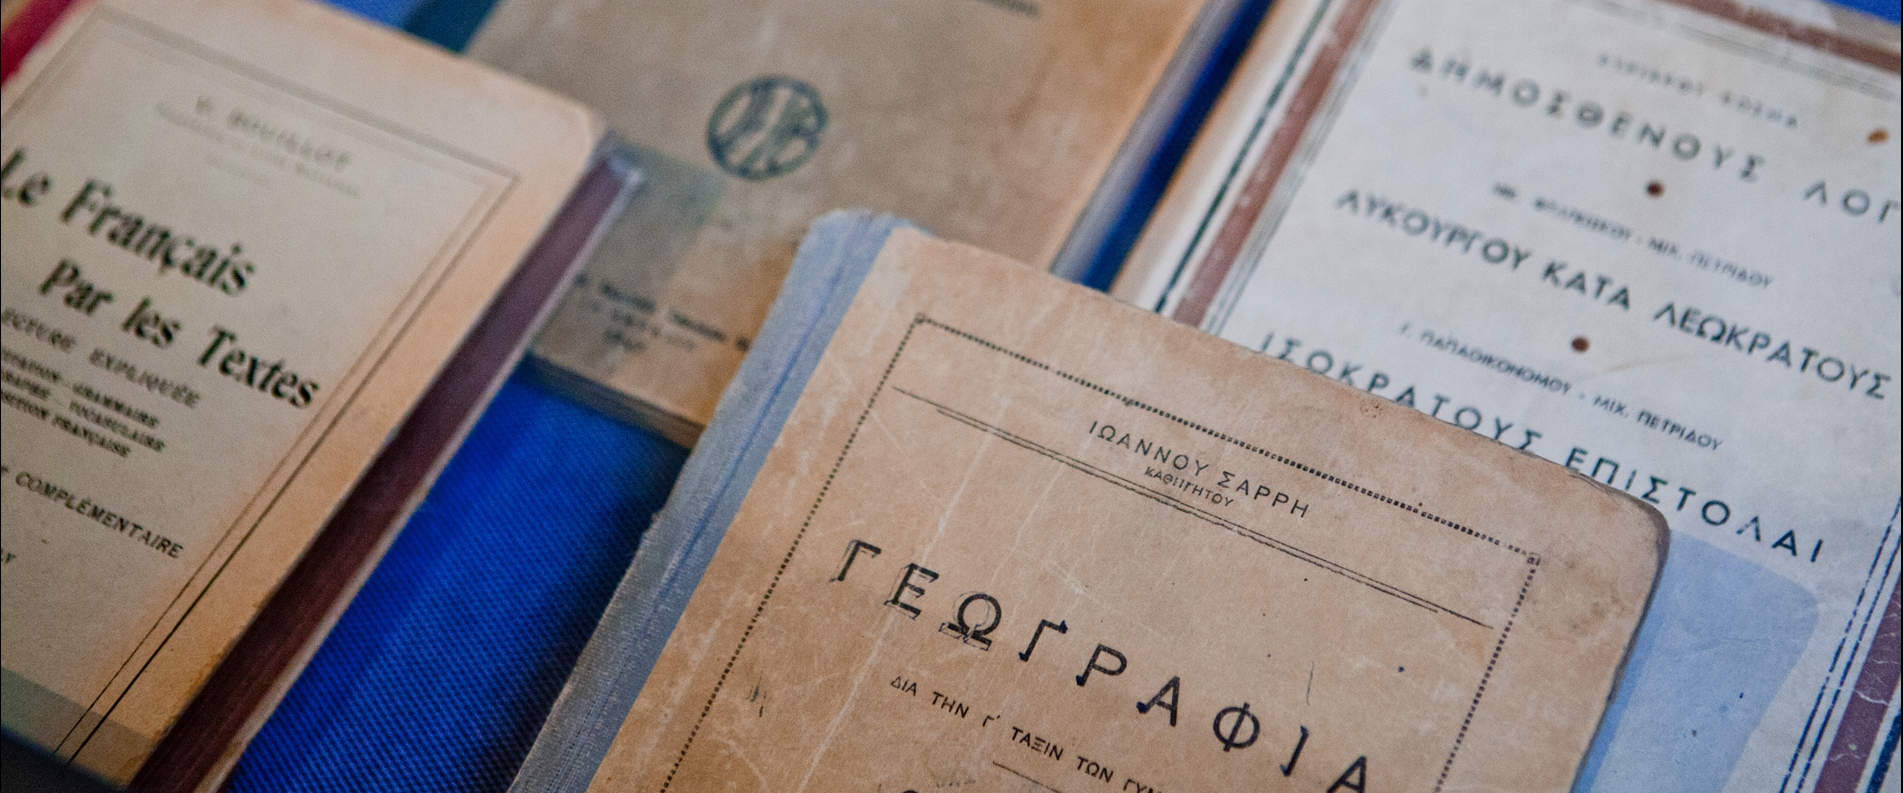 The Pancyprian Gymnasium Museum in Nicosia